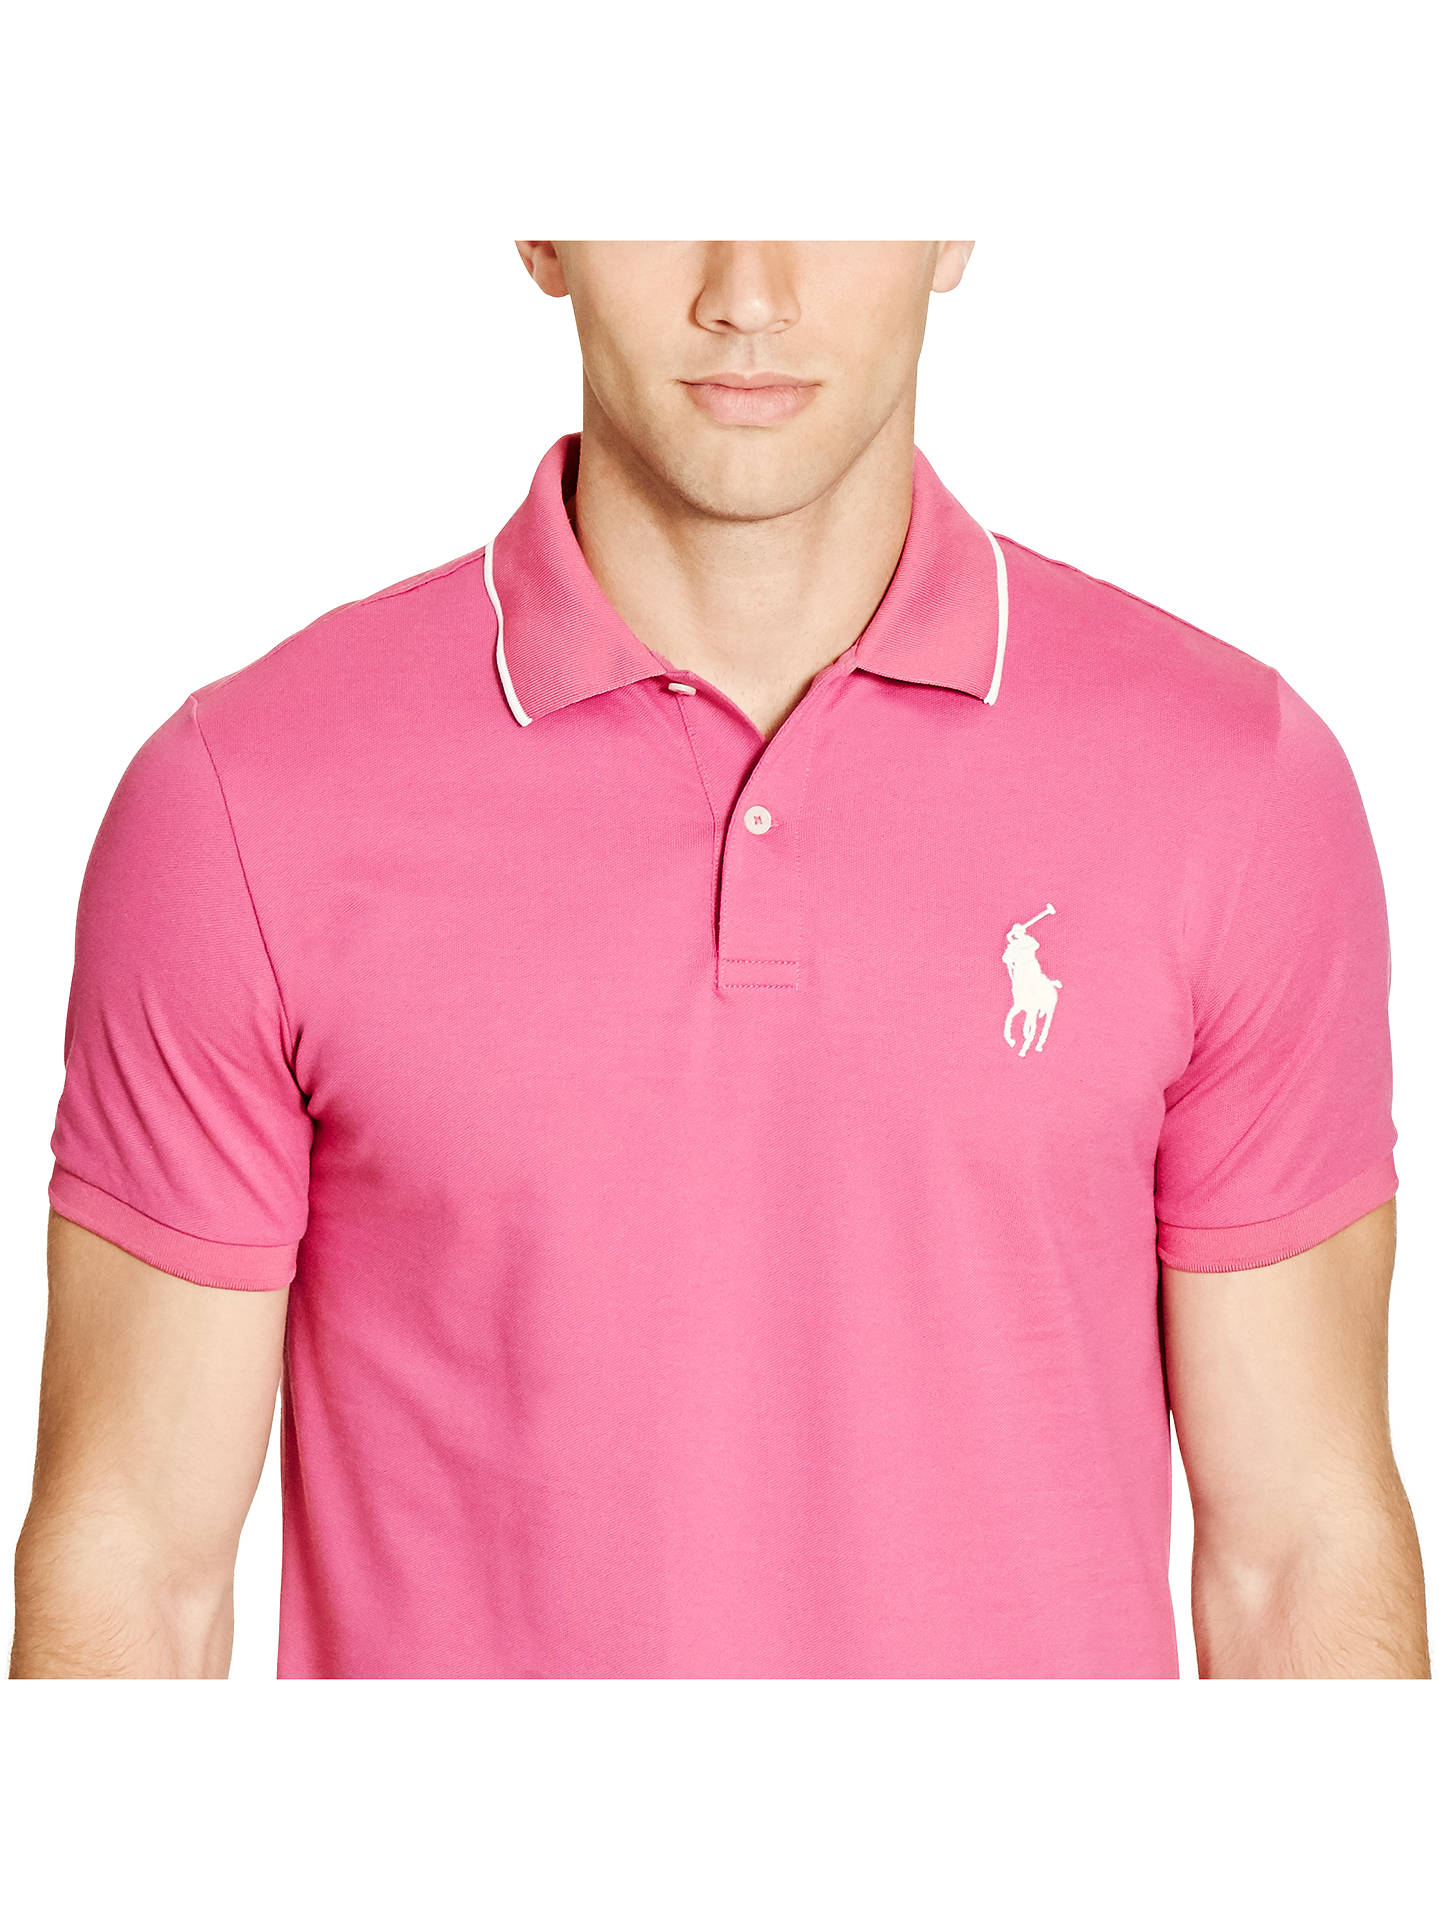 072ba8609 ... Buy Polo Golf by Ralph Lauren Pro Fit Polo Shirt, Kingston Rose, S  Online ...